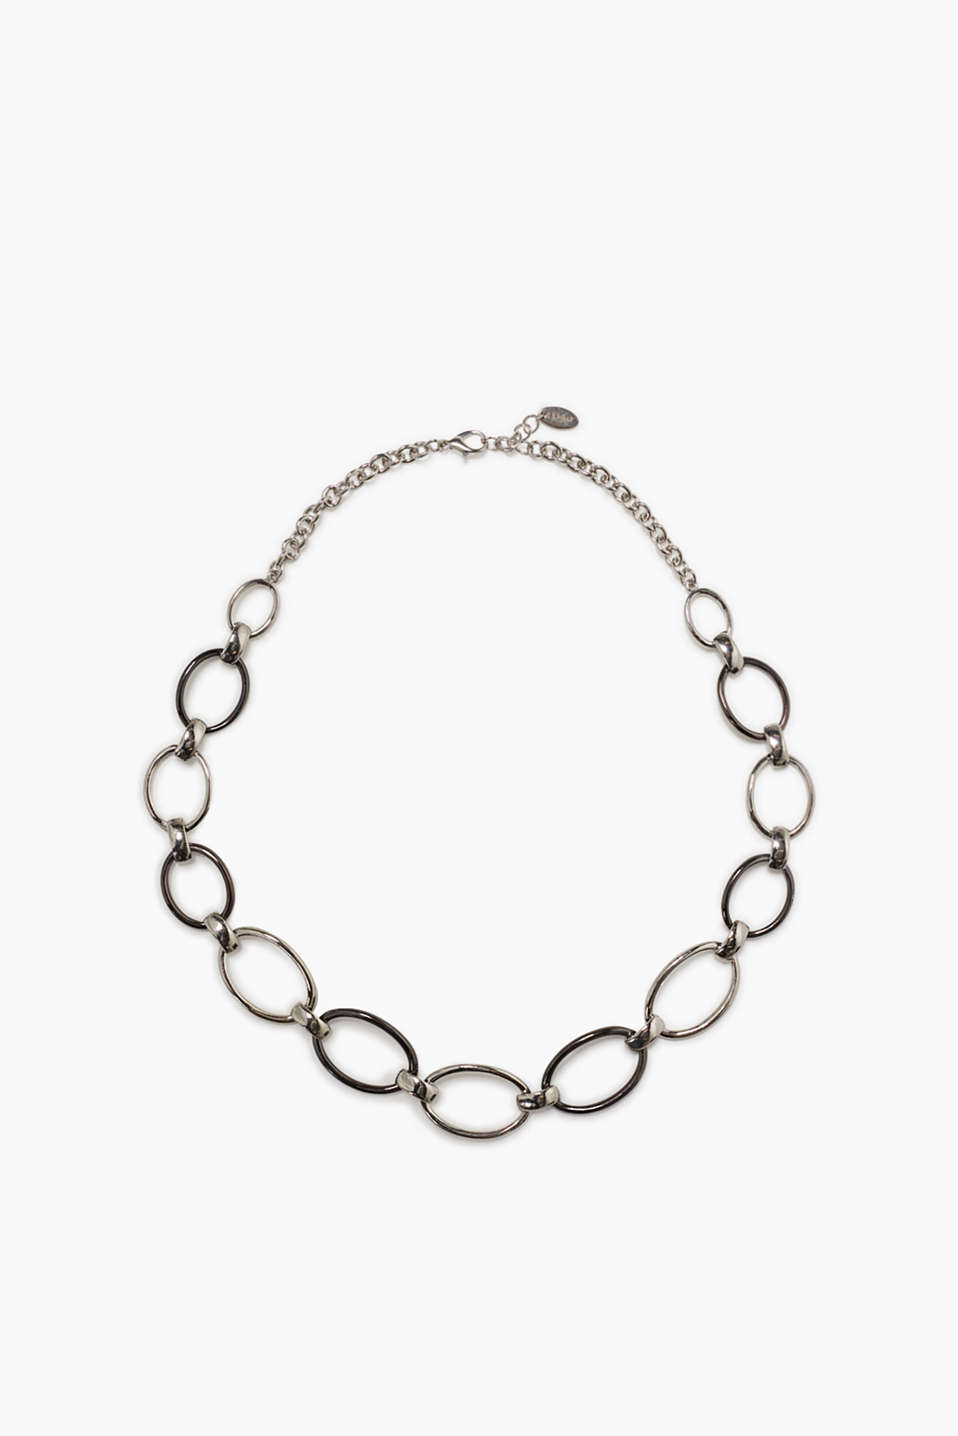 Necklace made of oval links in bright and tarnished silver shades